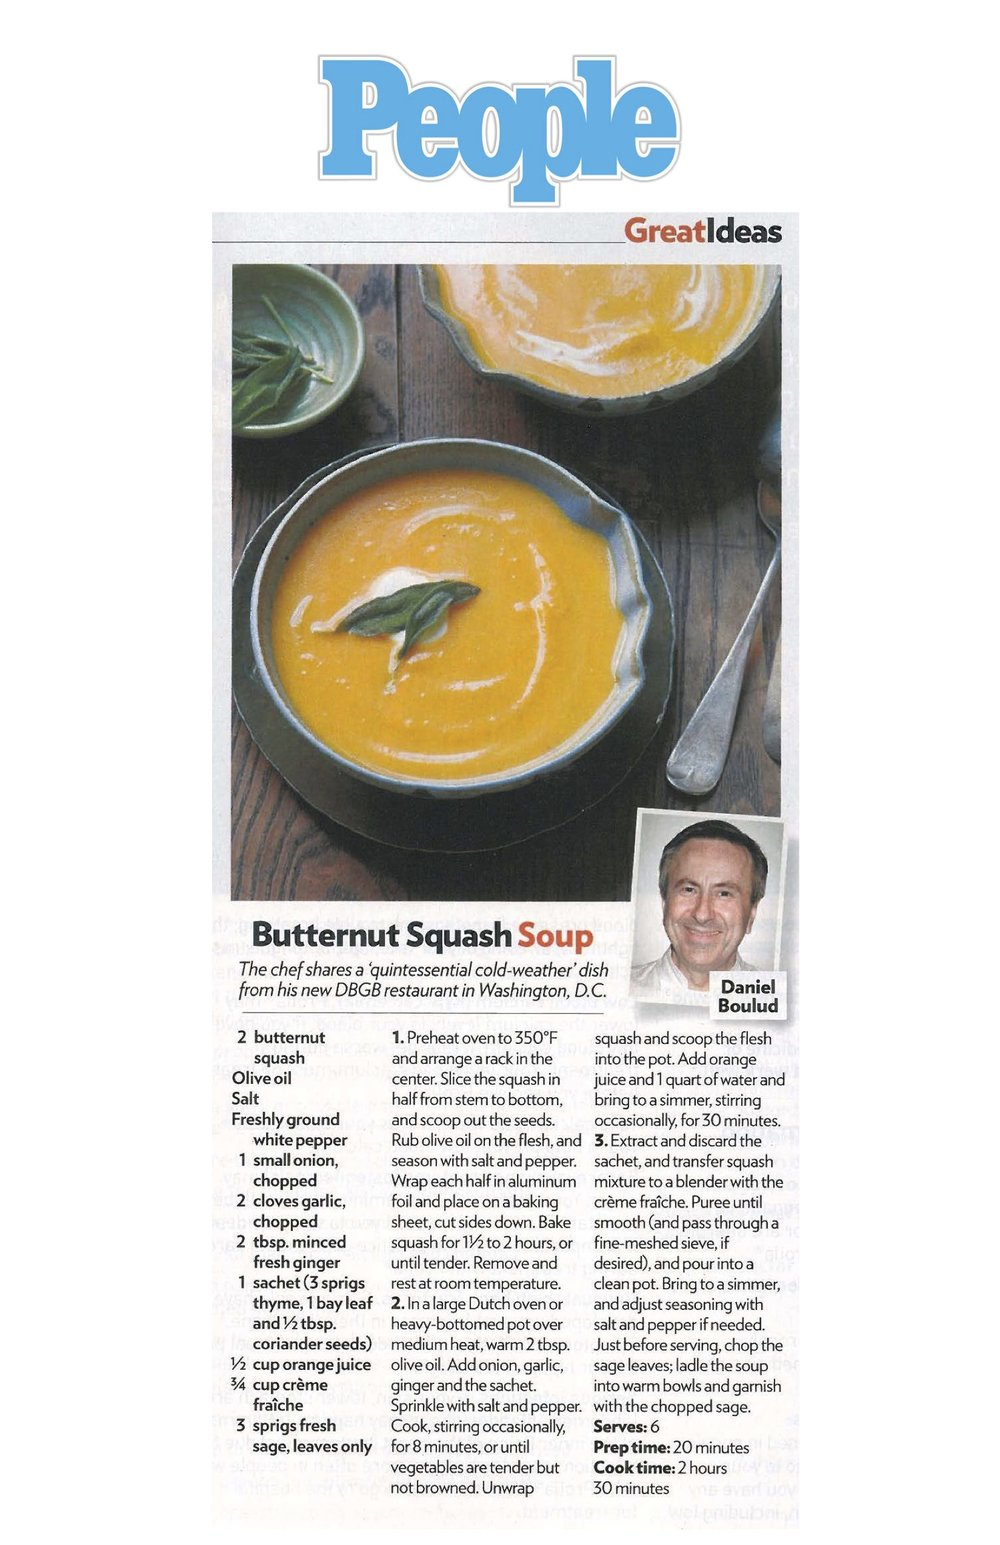 DBGB DC_People_Butternut Squash Soup_Dec 29 2014.jpg